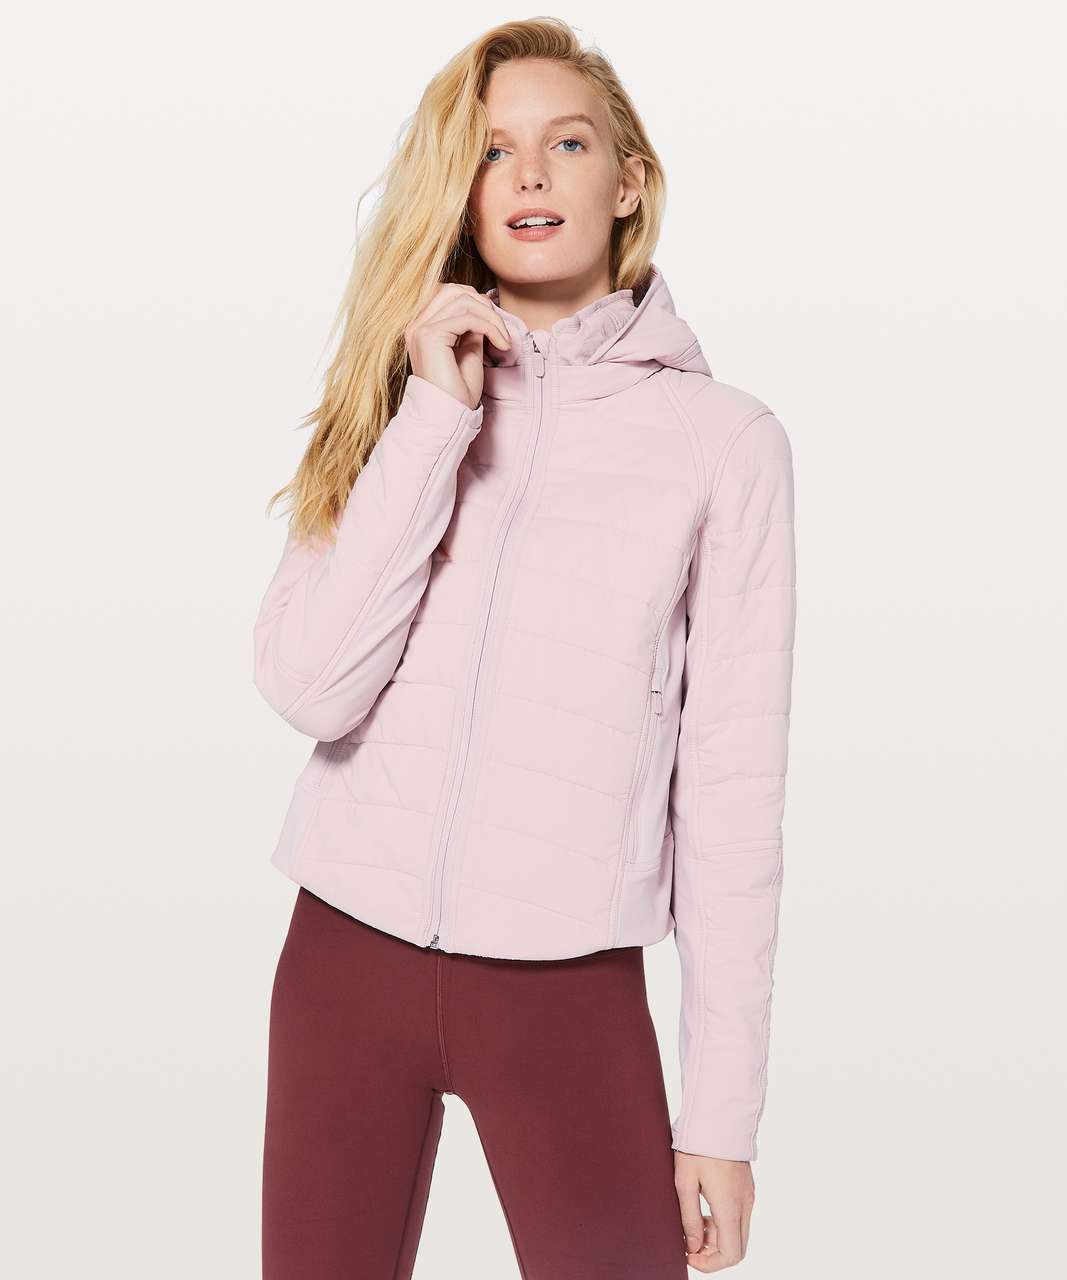 Lululemon Push Your Pace Jacket - Porcelain Pink